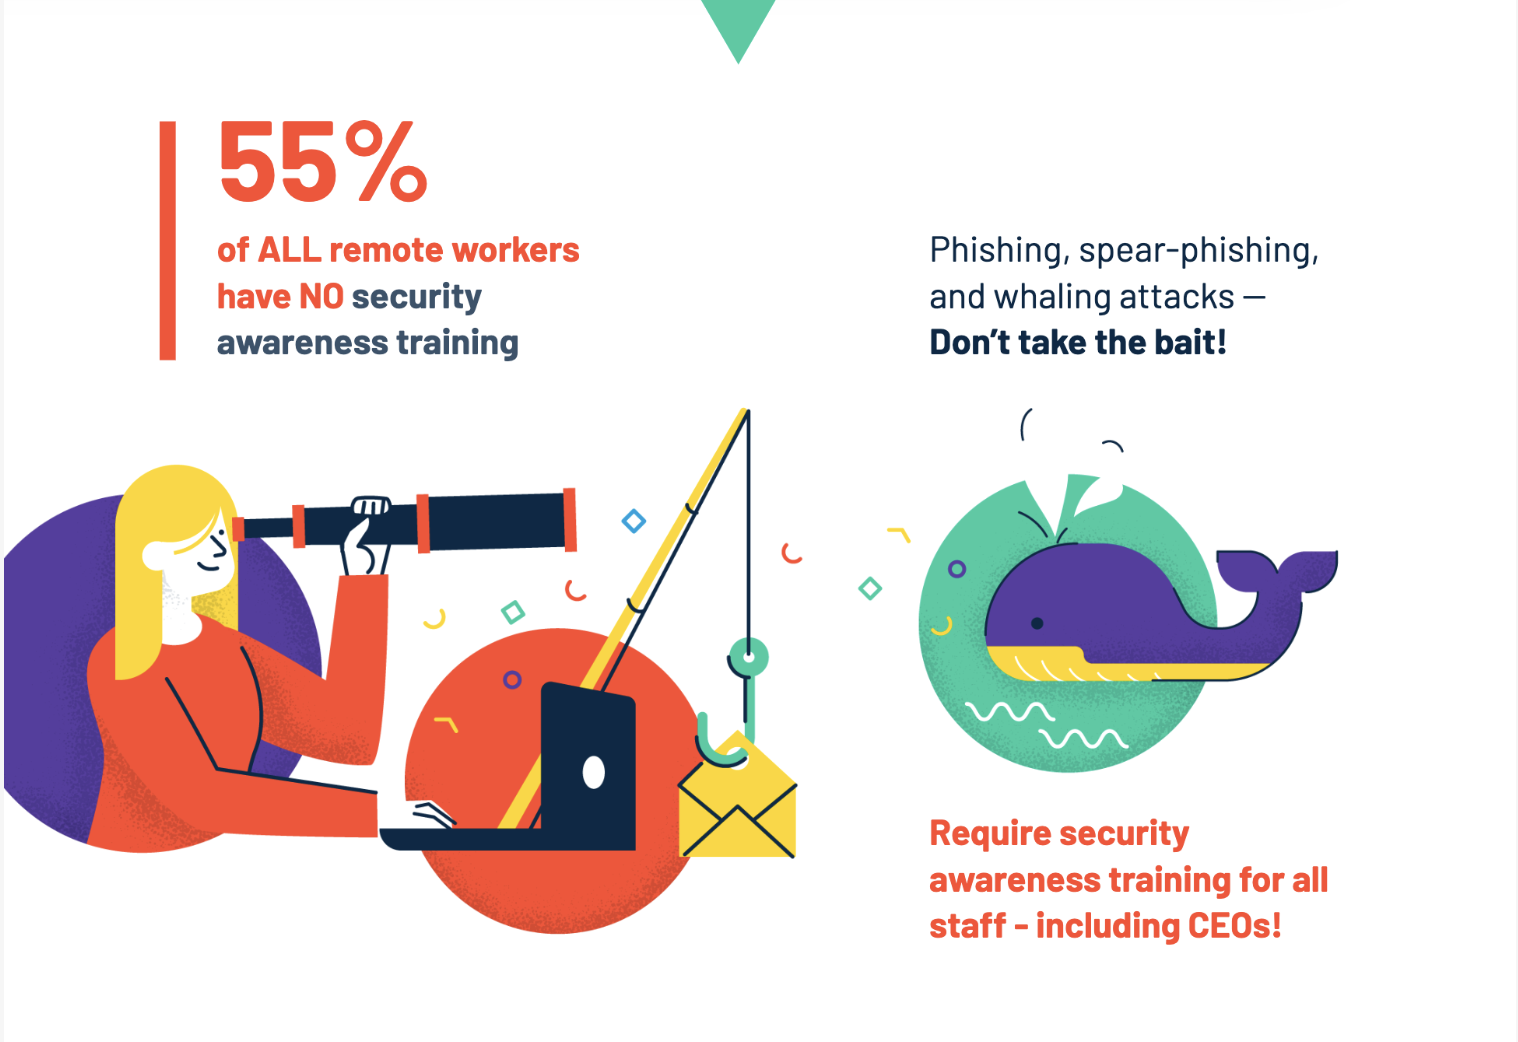 G2 survey infographic: 55% of all remote workers have NO security awareness training